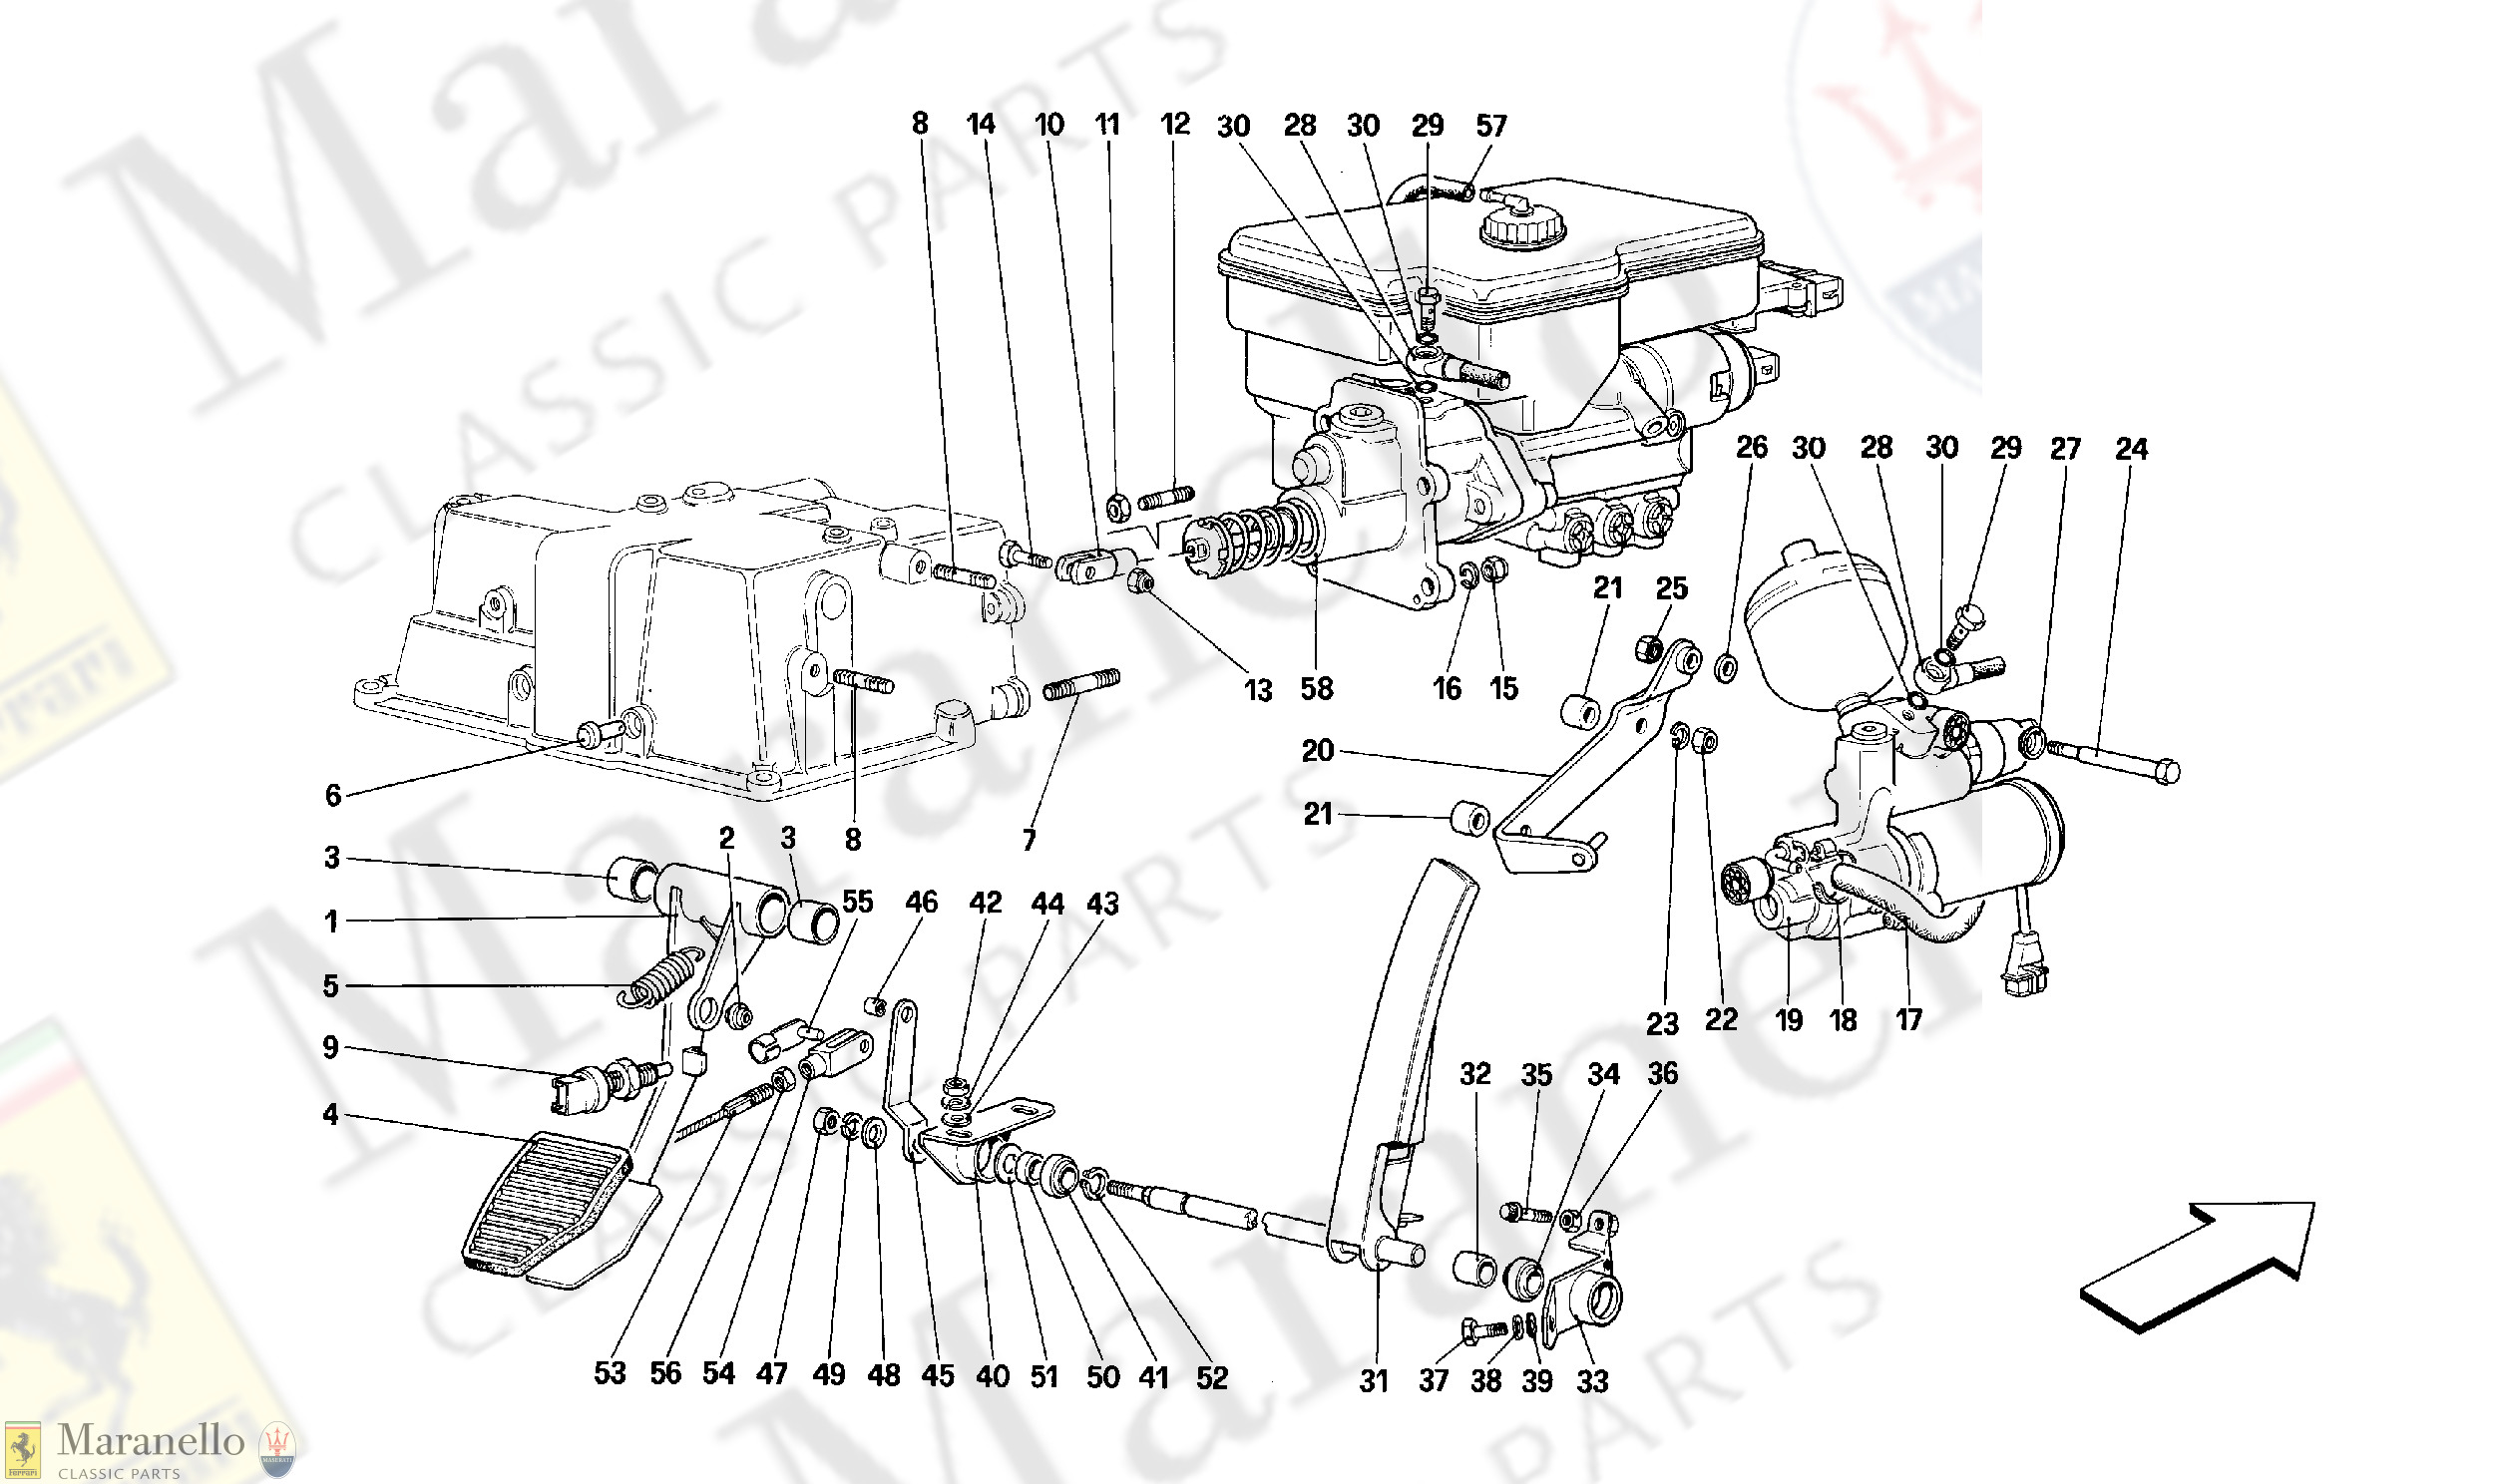 062 - Throttle Pedal And Brake Hydraulic System -Valid For Gd-